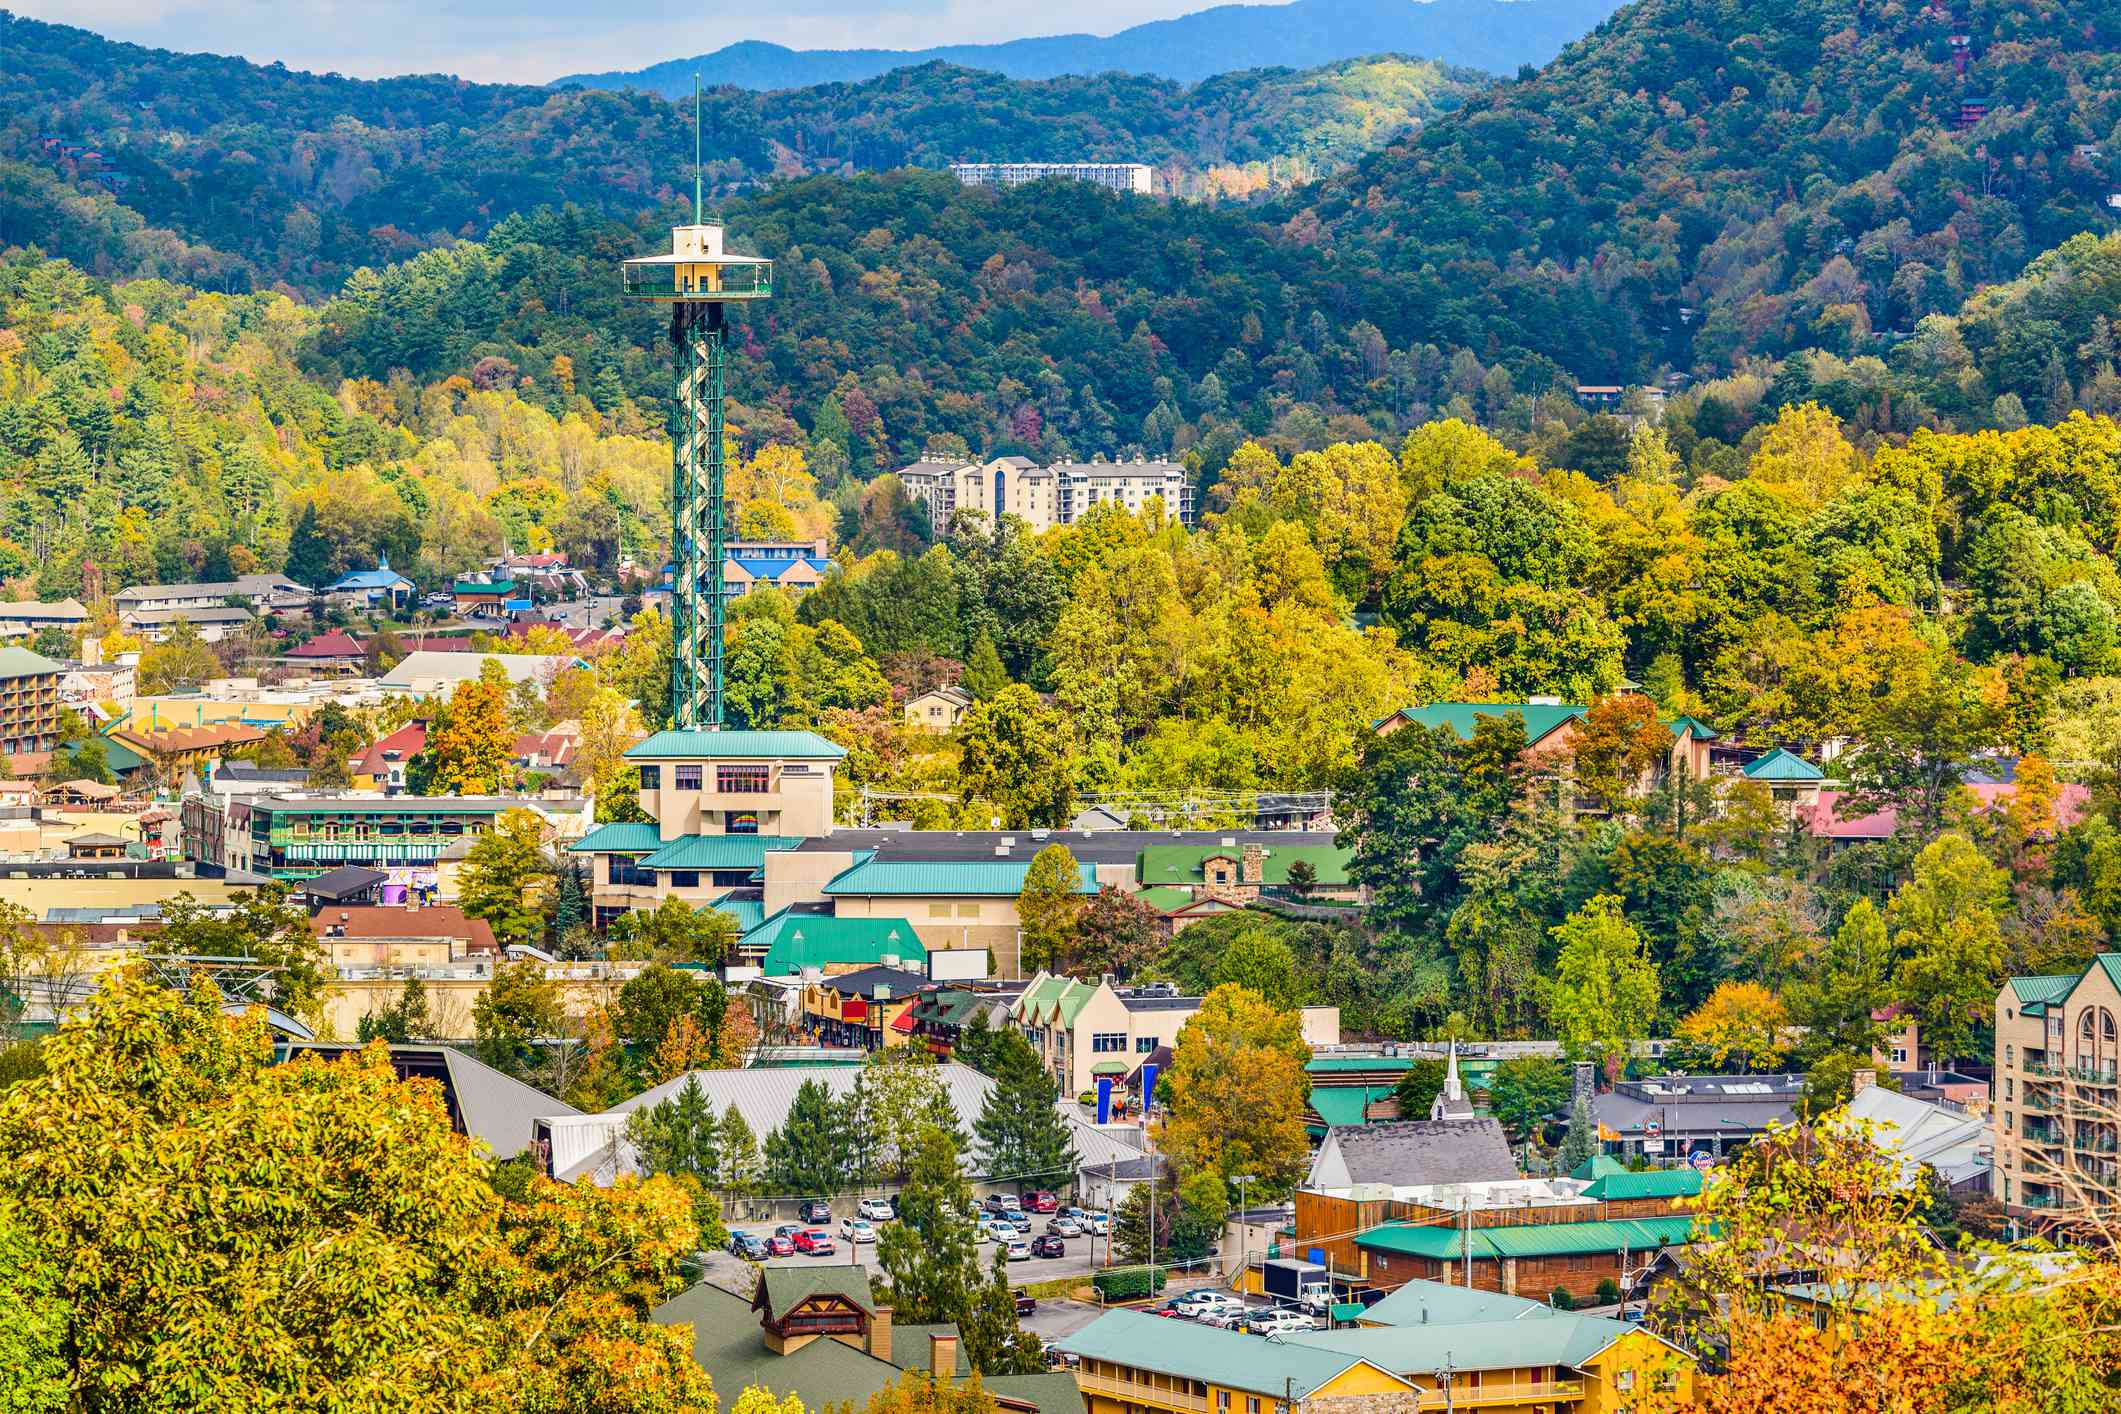 green observationtower rising out of a small town surrounded by yellow trees